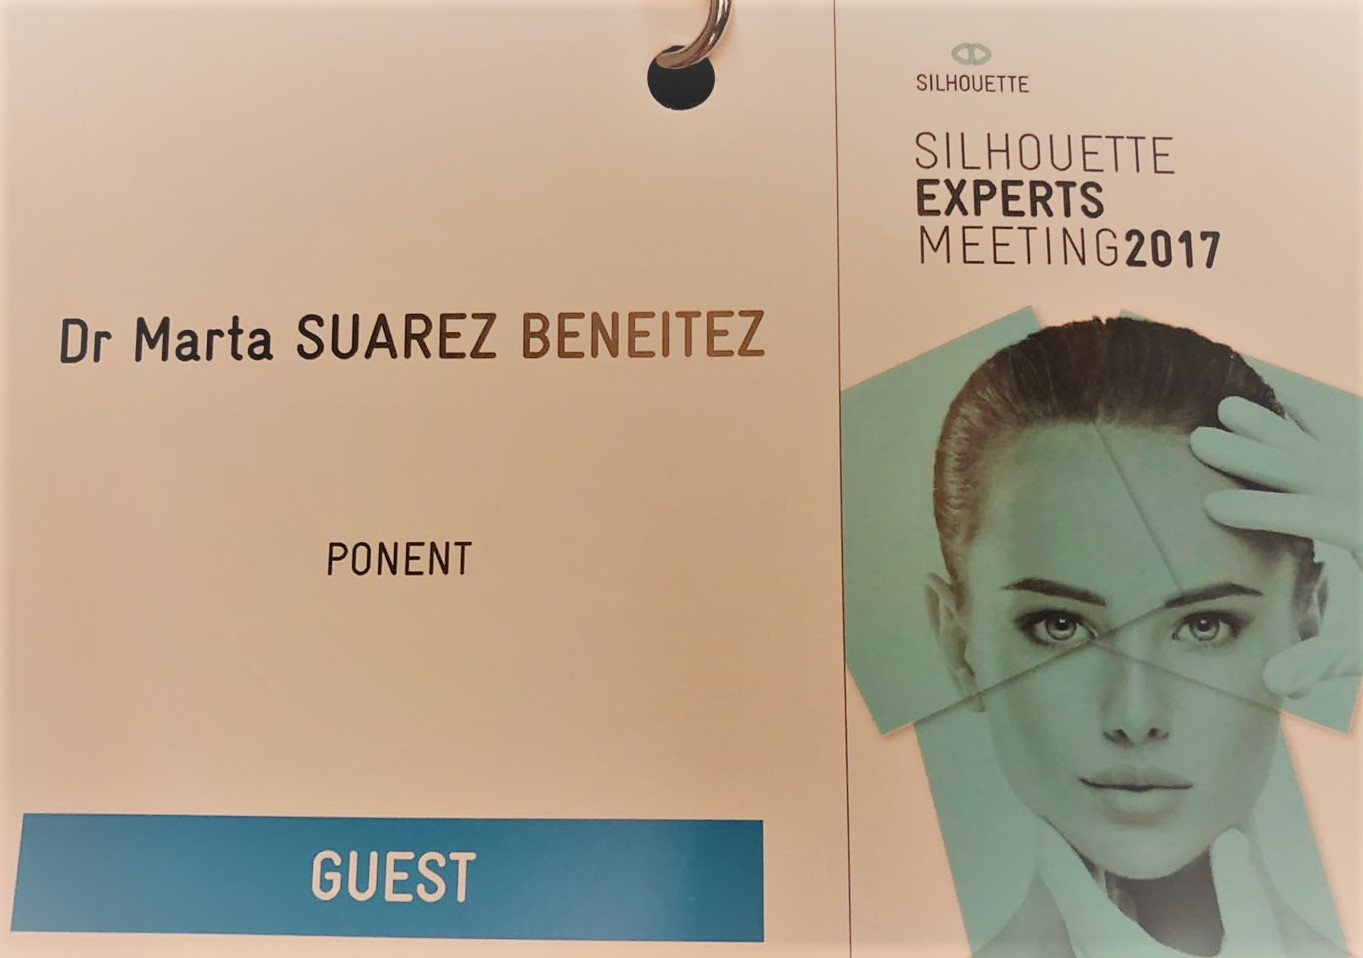 Dra. Suarez ponente World Experts Meeting 2017